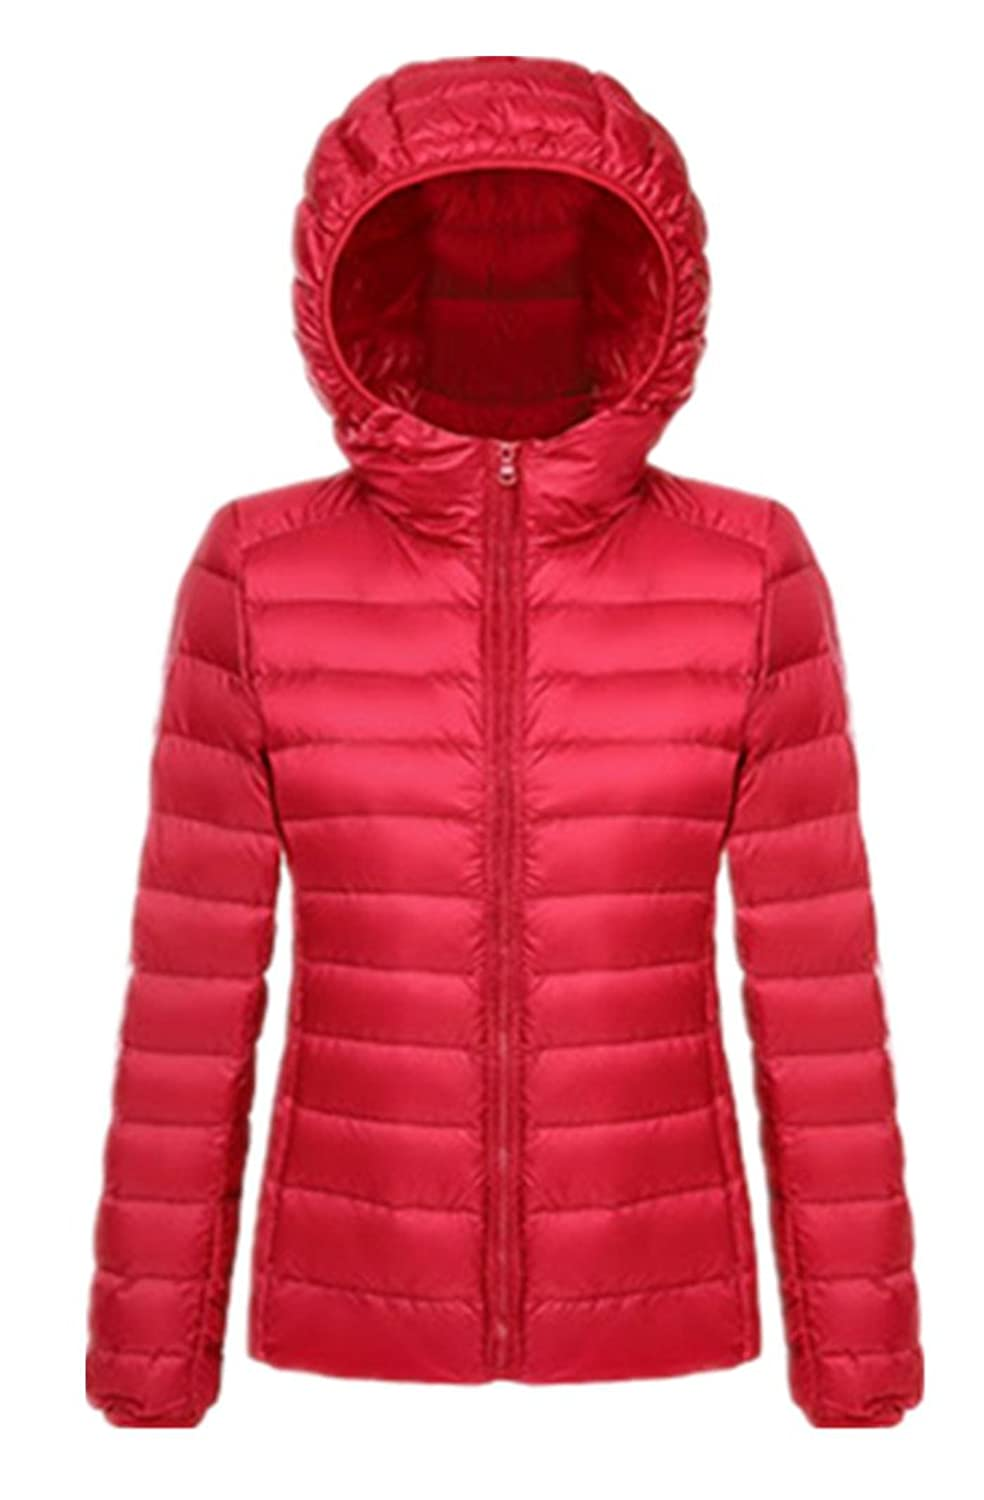 H.X Women's Light Weight Packable Short Down Jacket with Hood